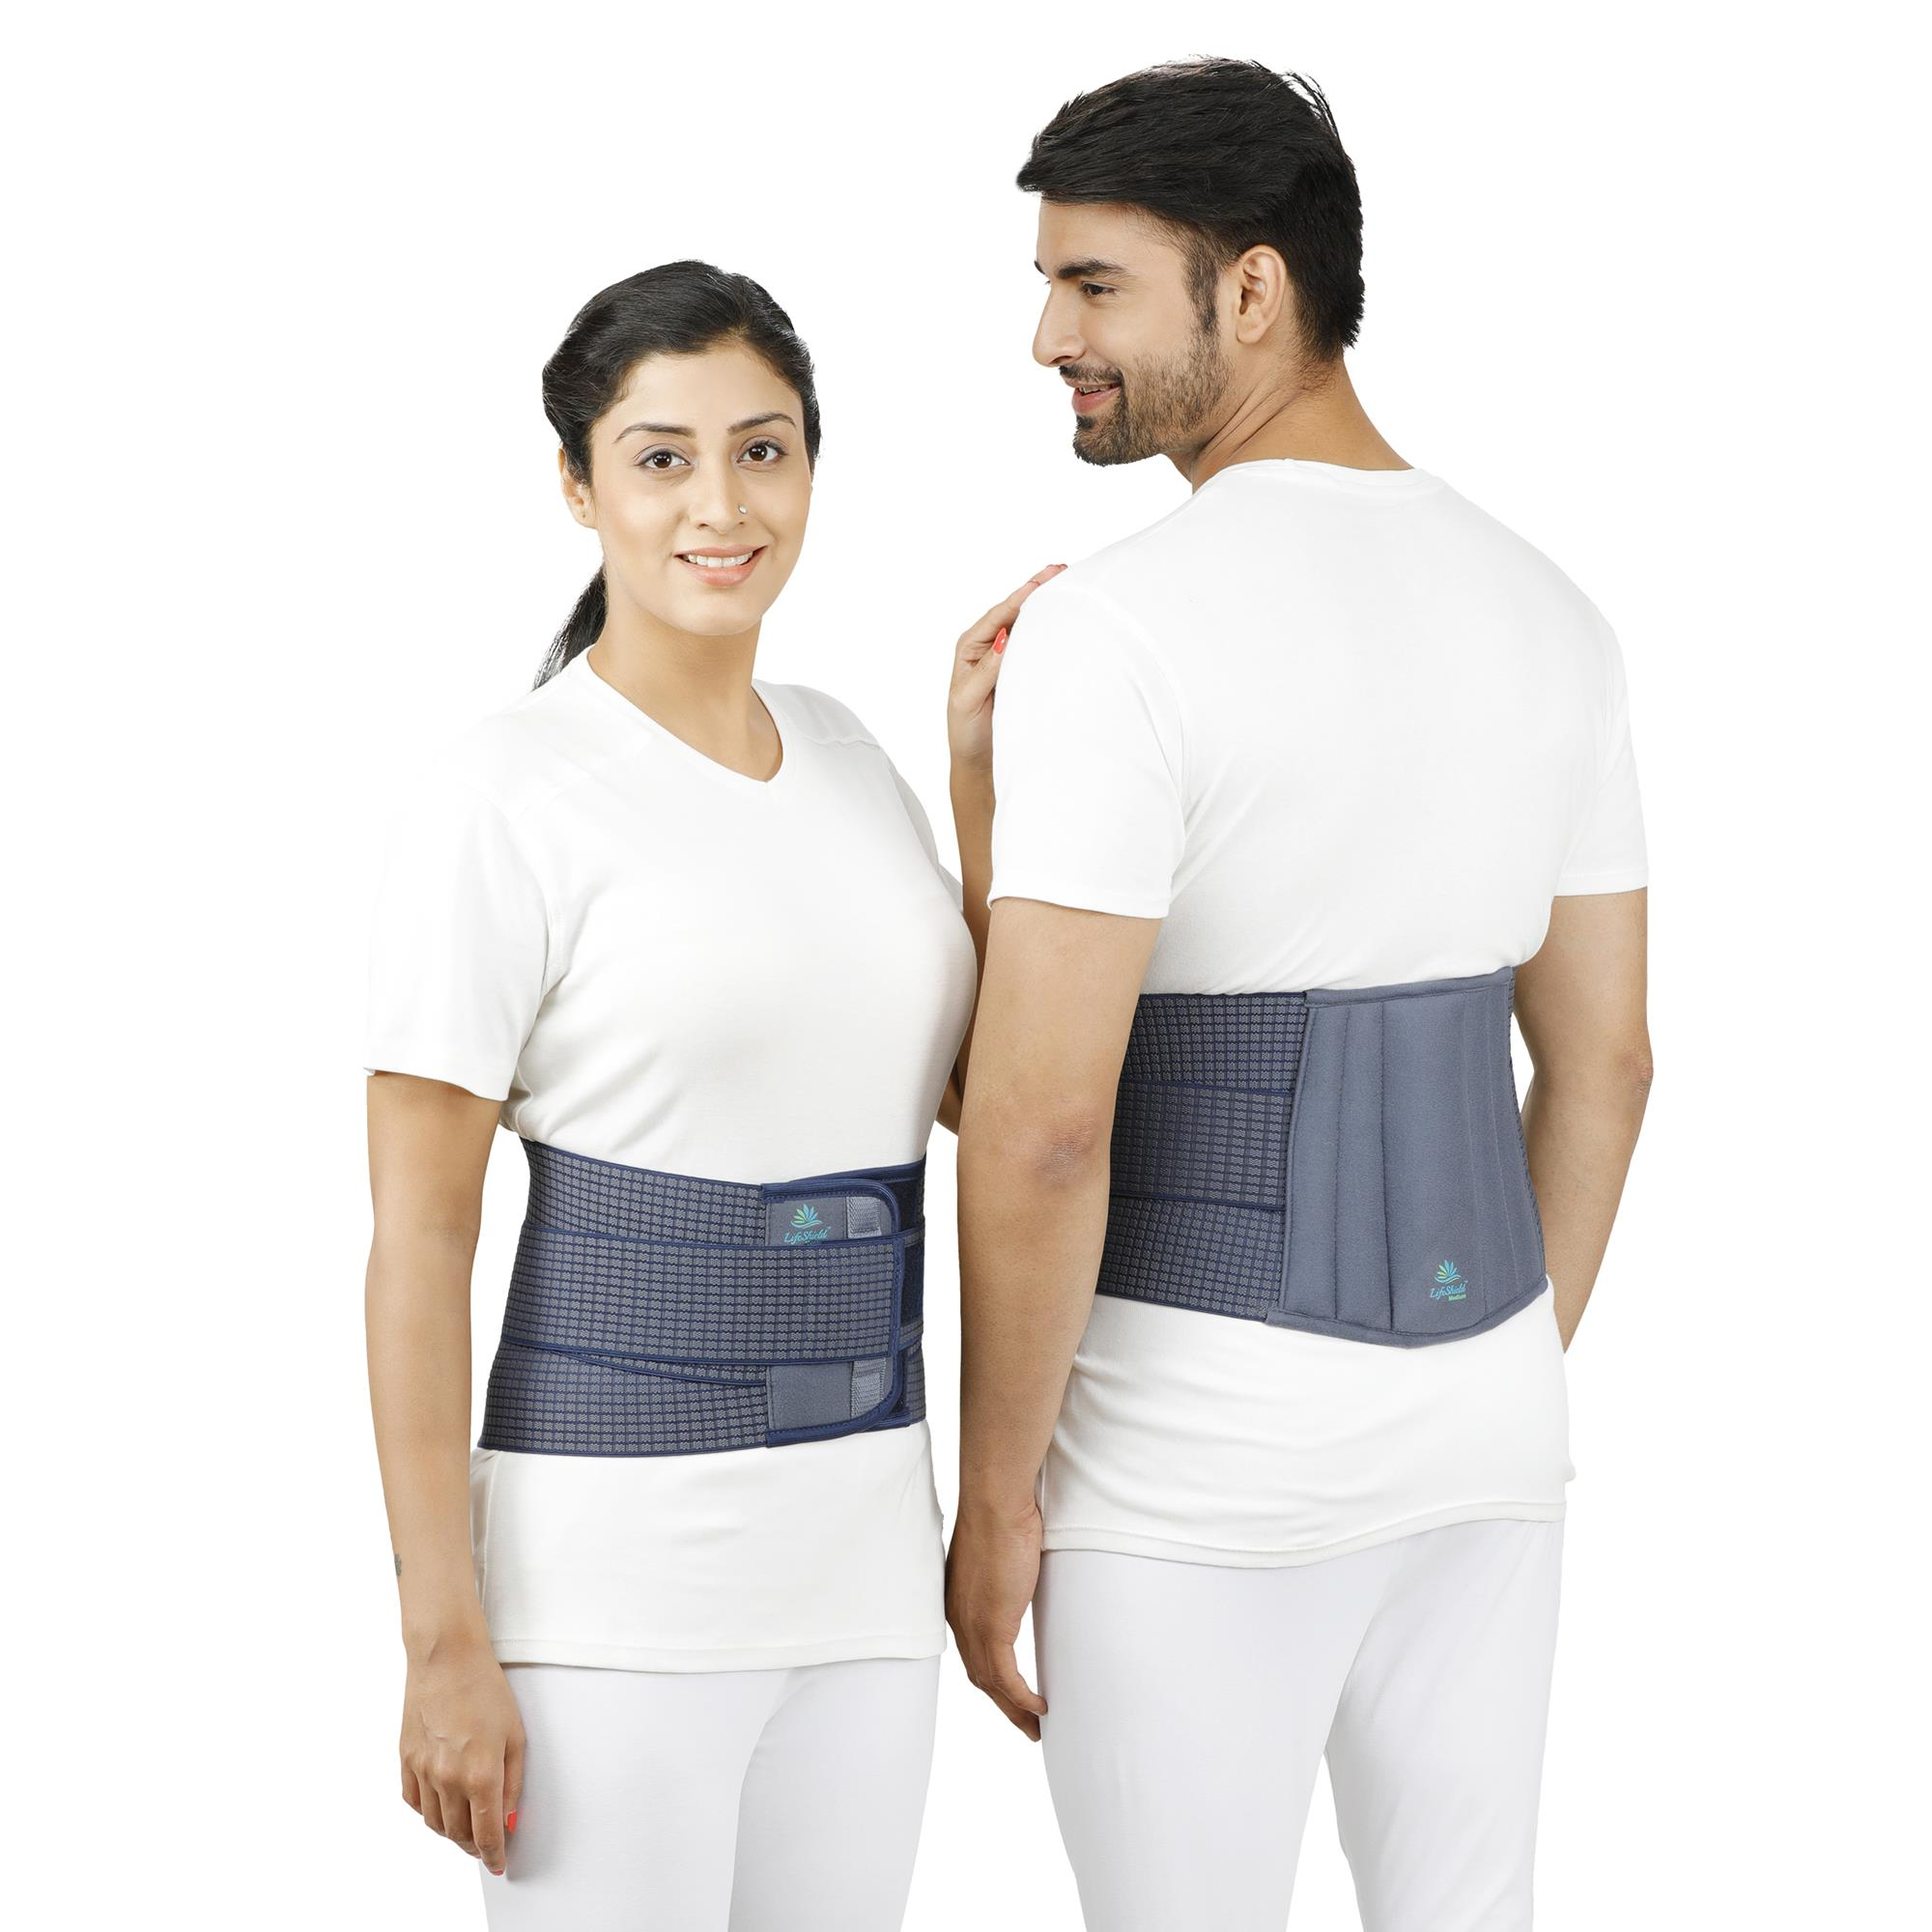 Lifeshield Lumbo Sacral Support With Soft Padded Foam: Provides Back Support To Lumber Region (Medium)